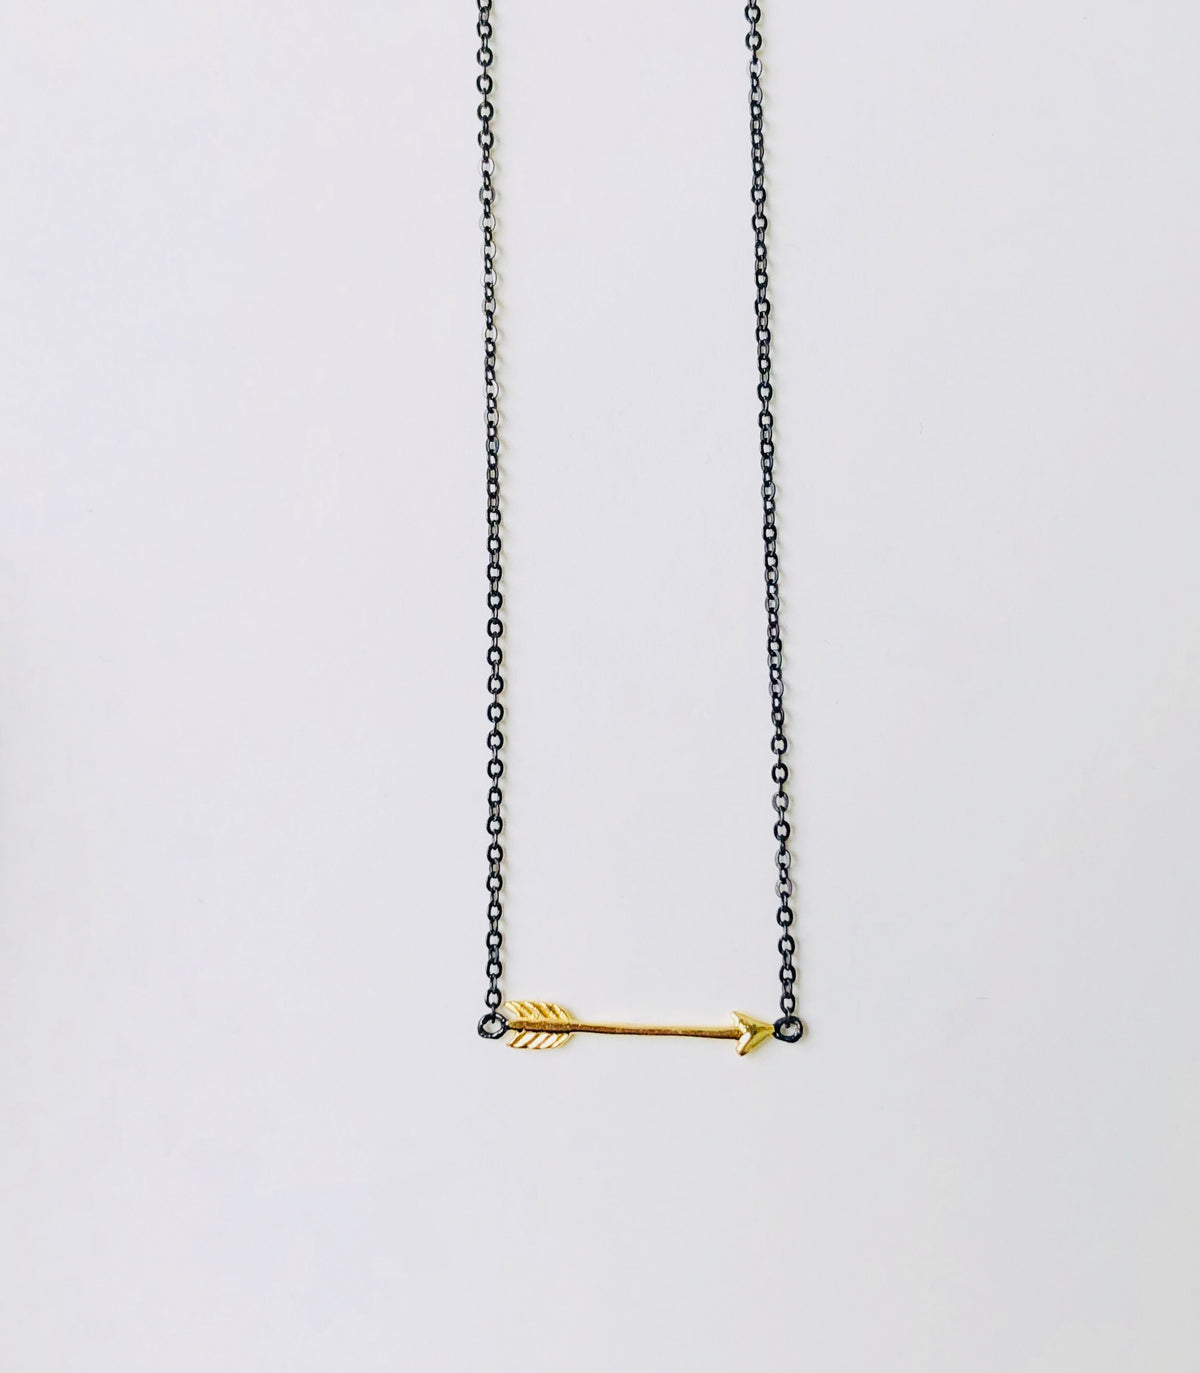 ARROW MIX METAL NECKLACE